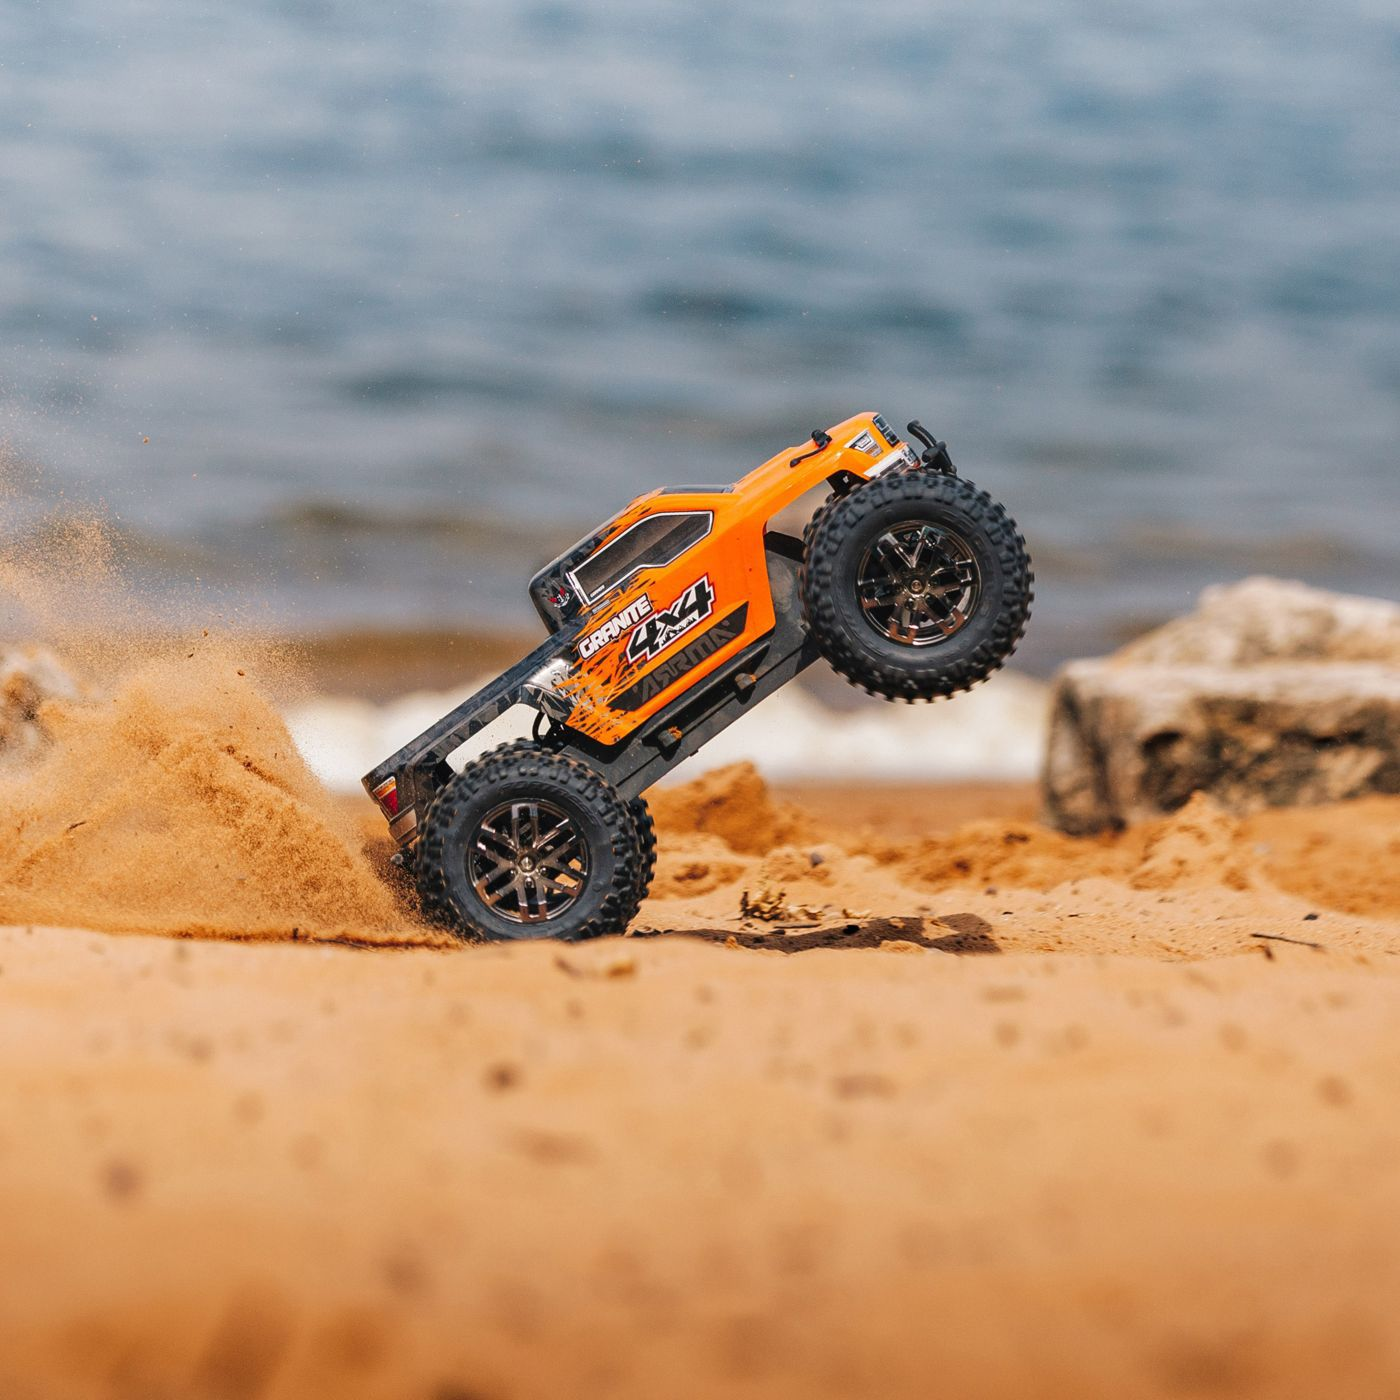 Arrma Granite 3S 4x4 Brushless BLX RTR 9